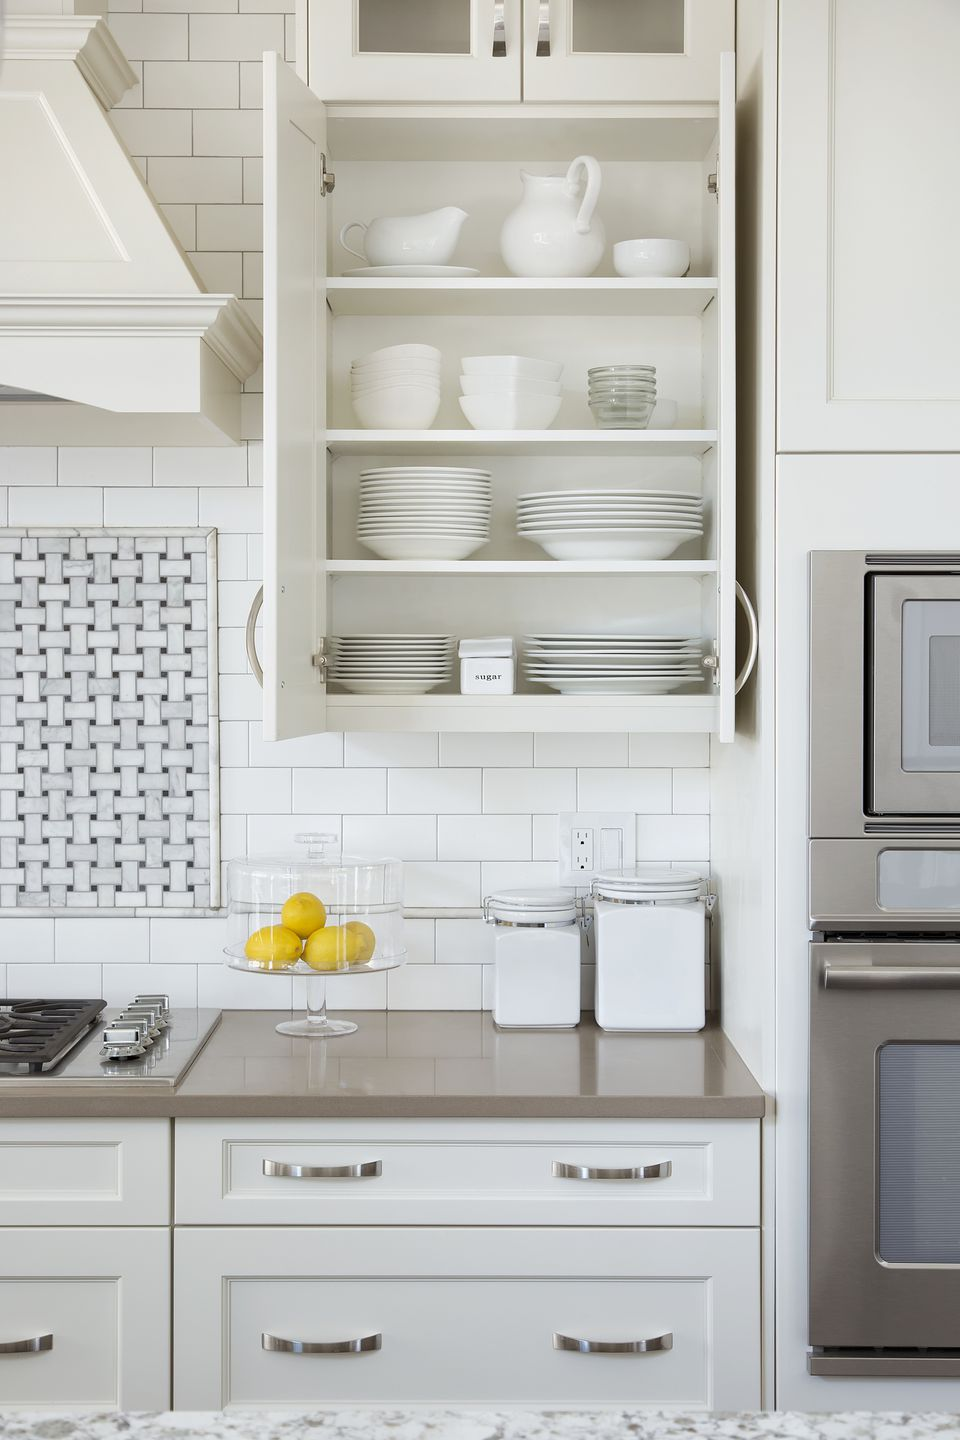 Organize your kitchen cabinets for Kitchen cabinets vs drawers